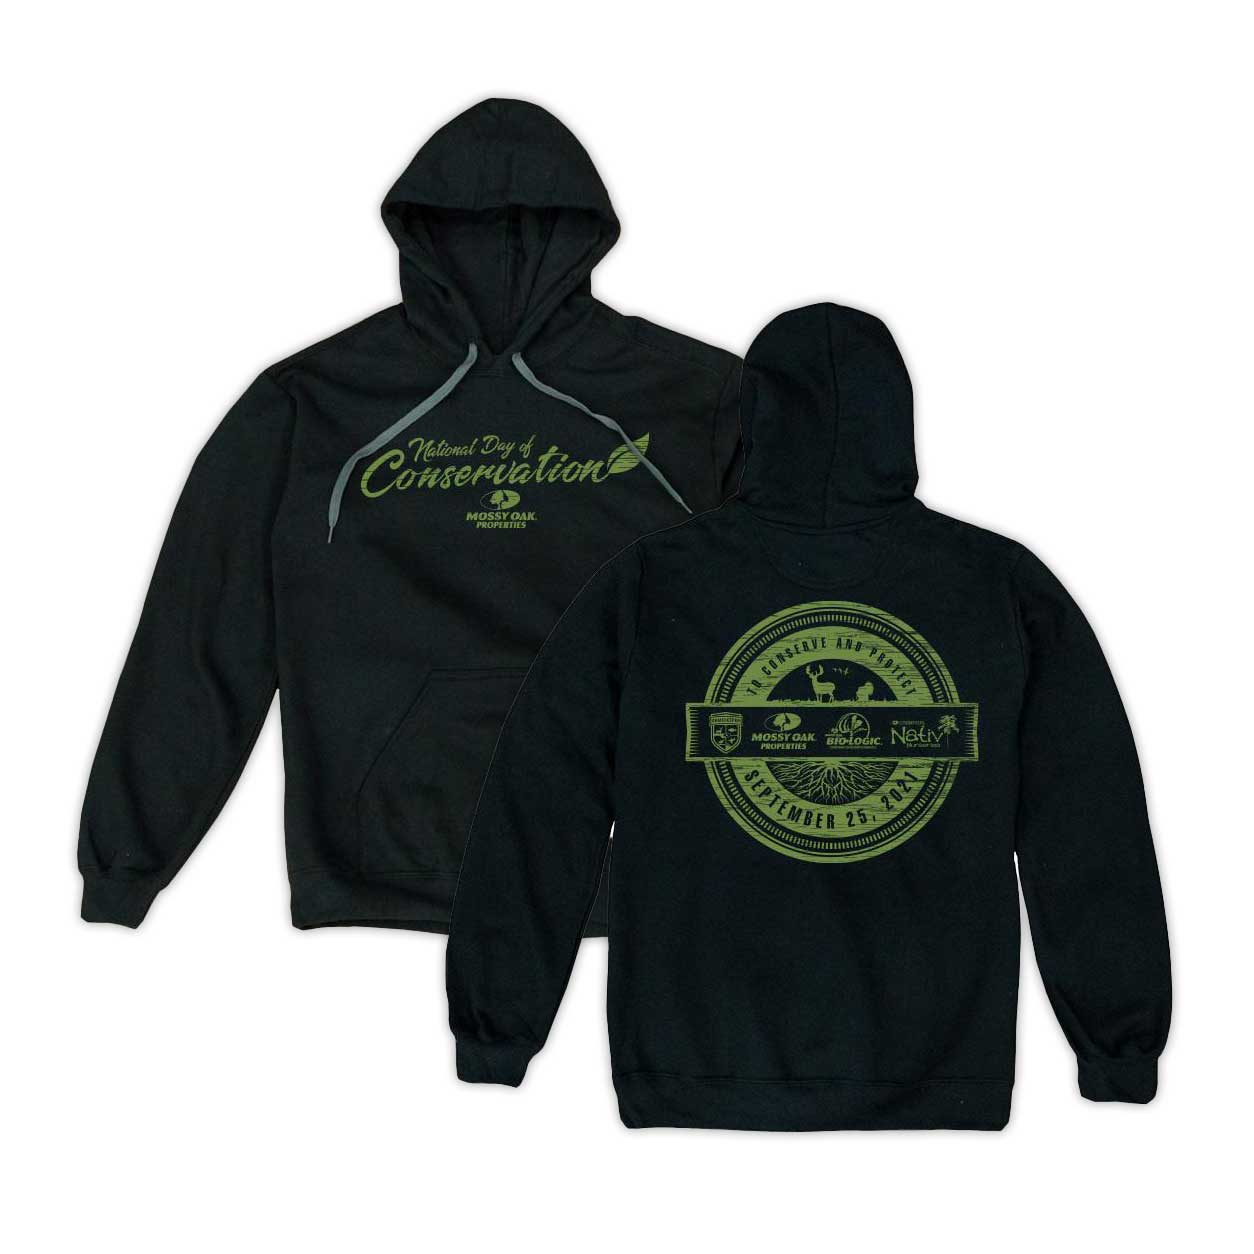 National Day of Conservation Hoodie